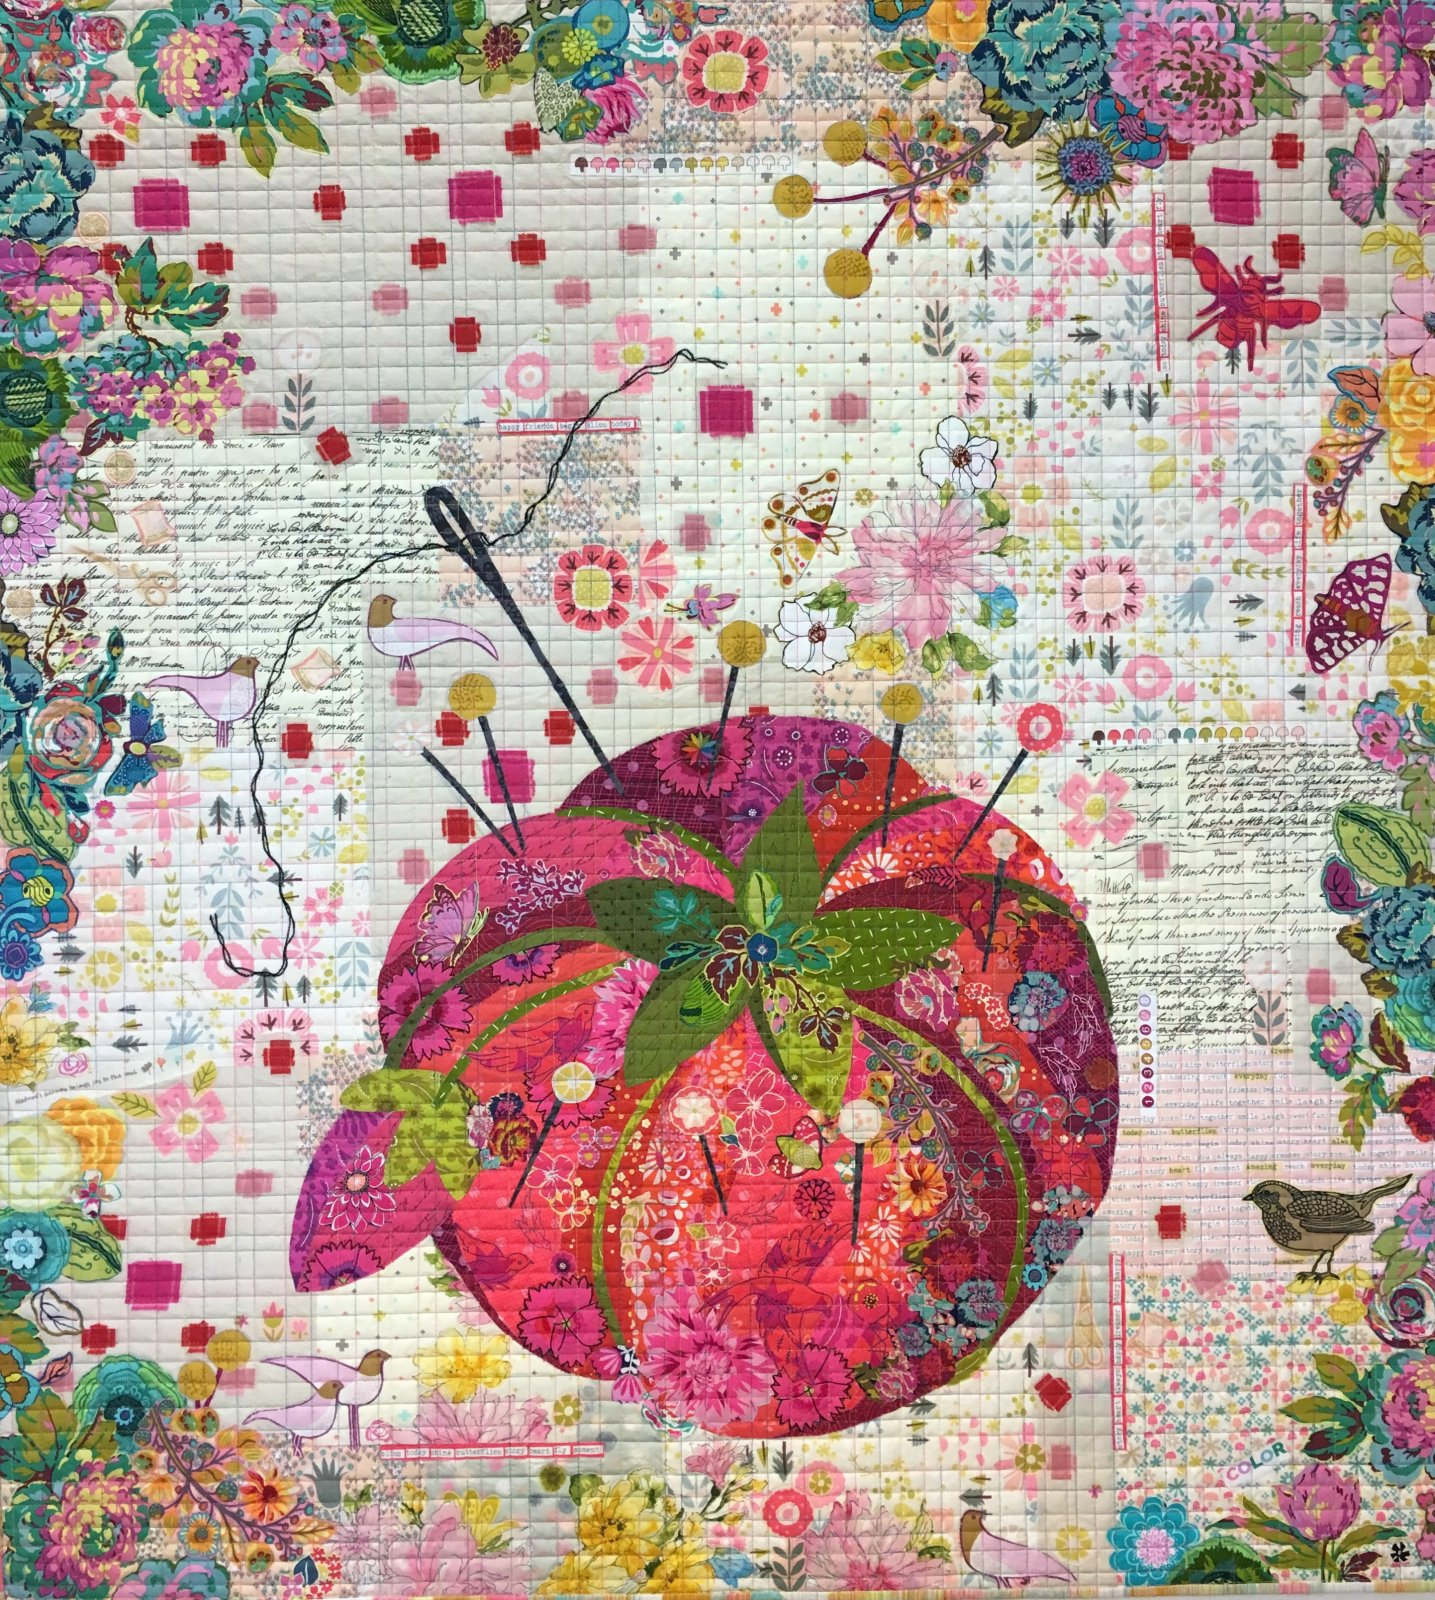 FWLHPIN -Pincushion Collage Kit by Laura Heine